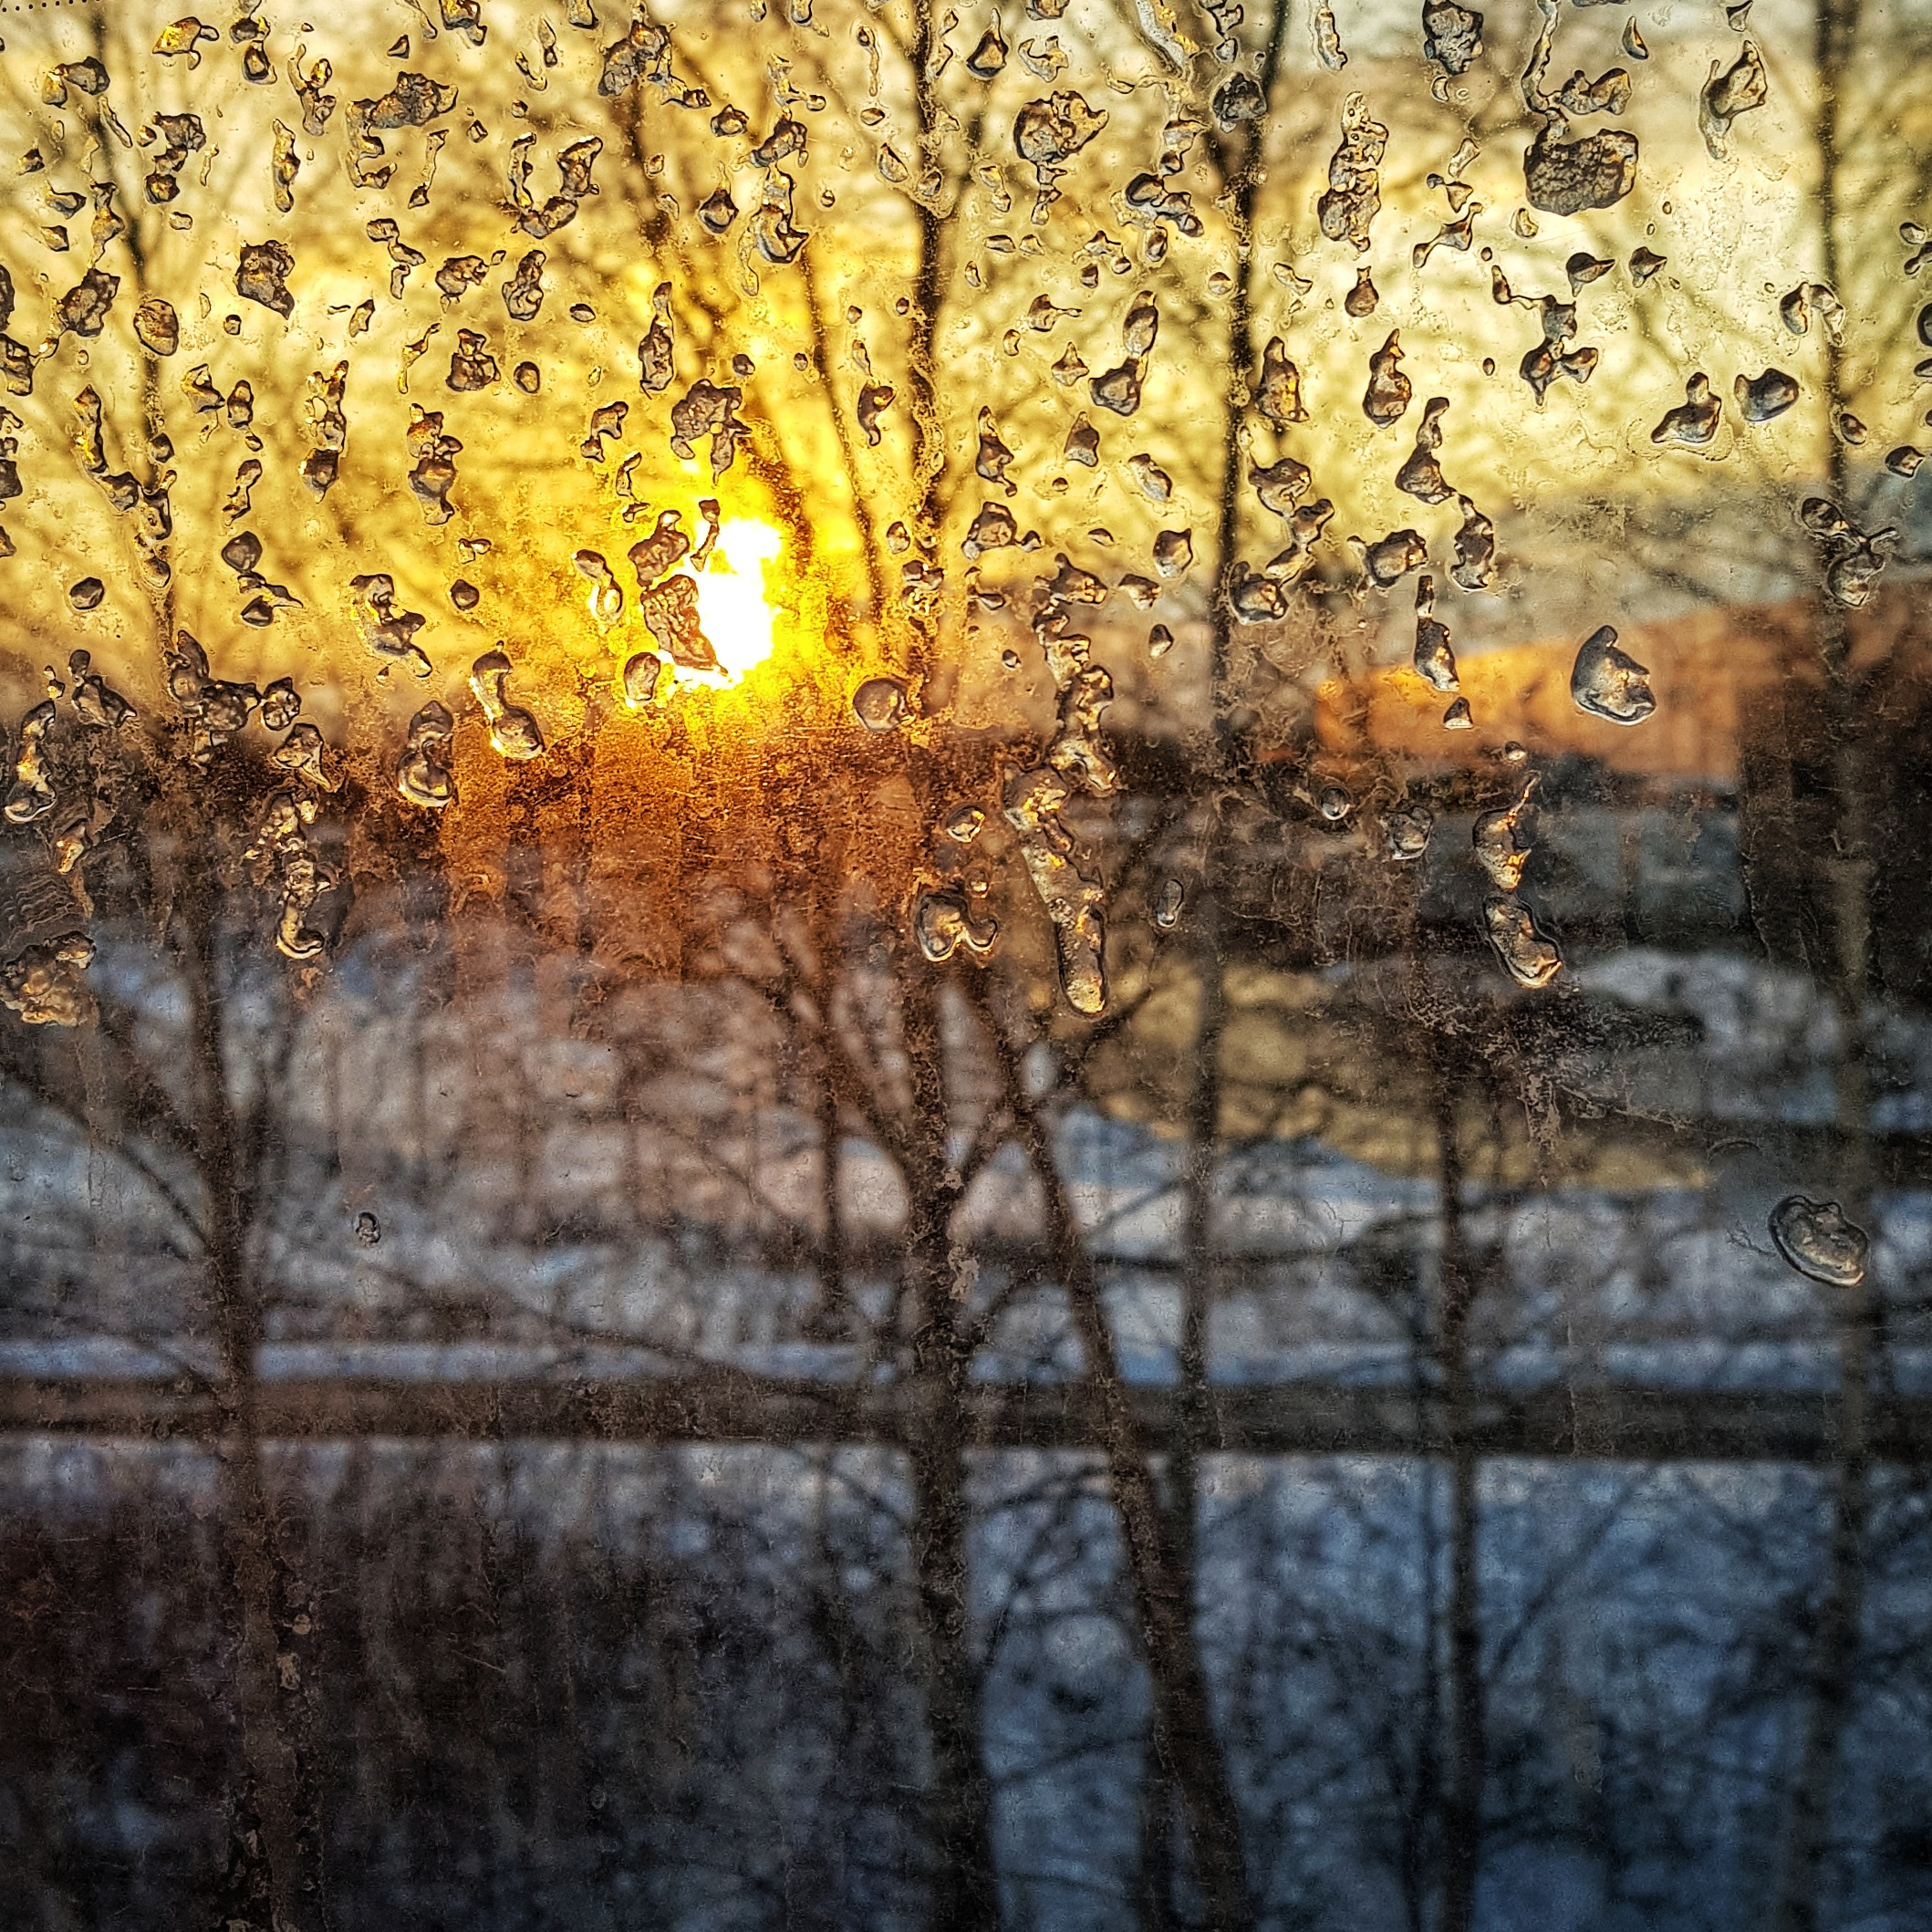 Day 60 - March 1: Sunset through a bus window